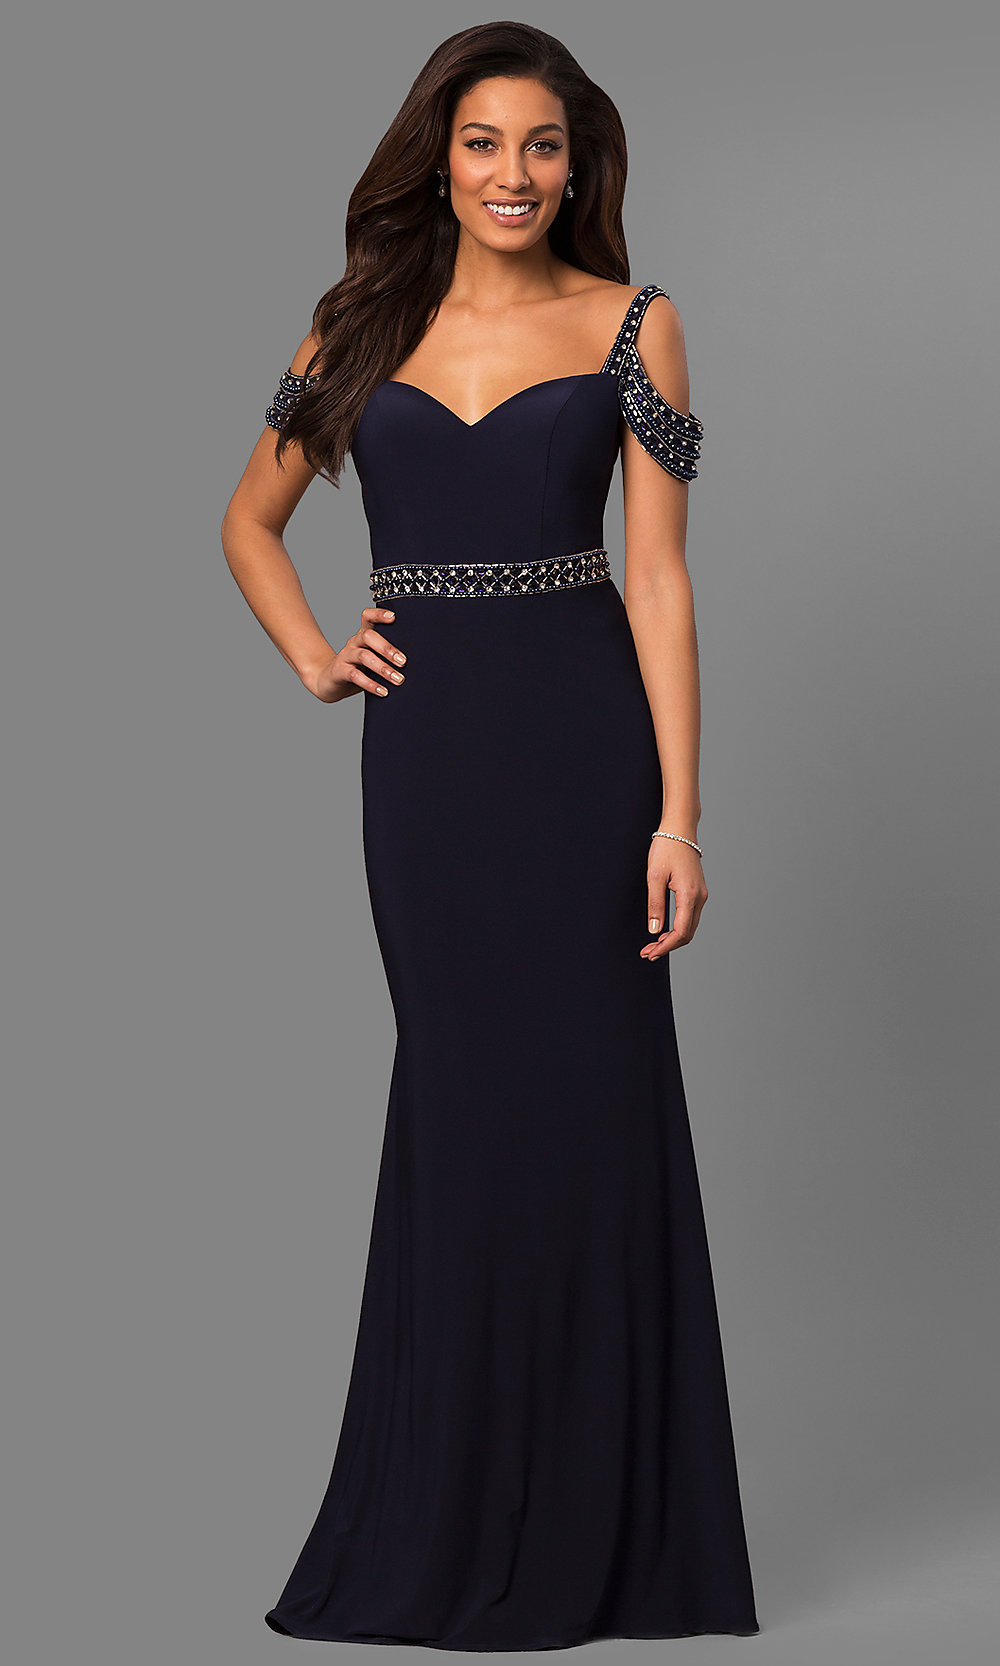 b7564f8b16a Long Cold-Shoulder Navy Blue Mother-of-the-Bride Dress